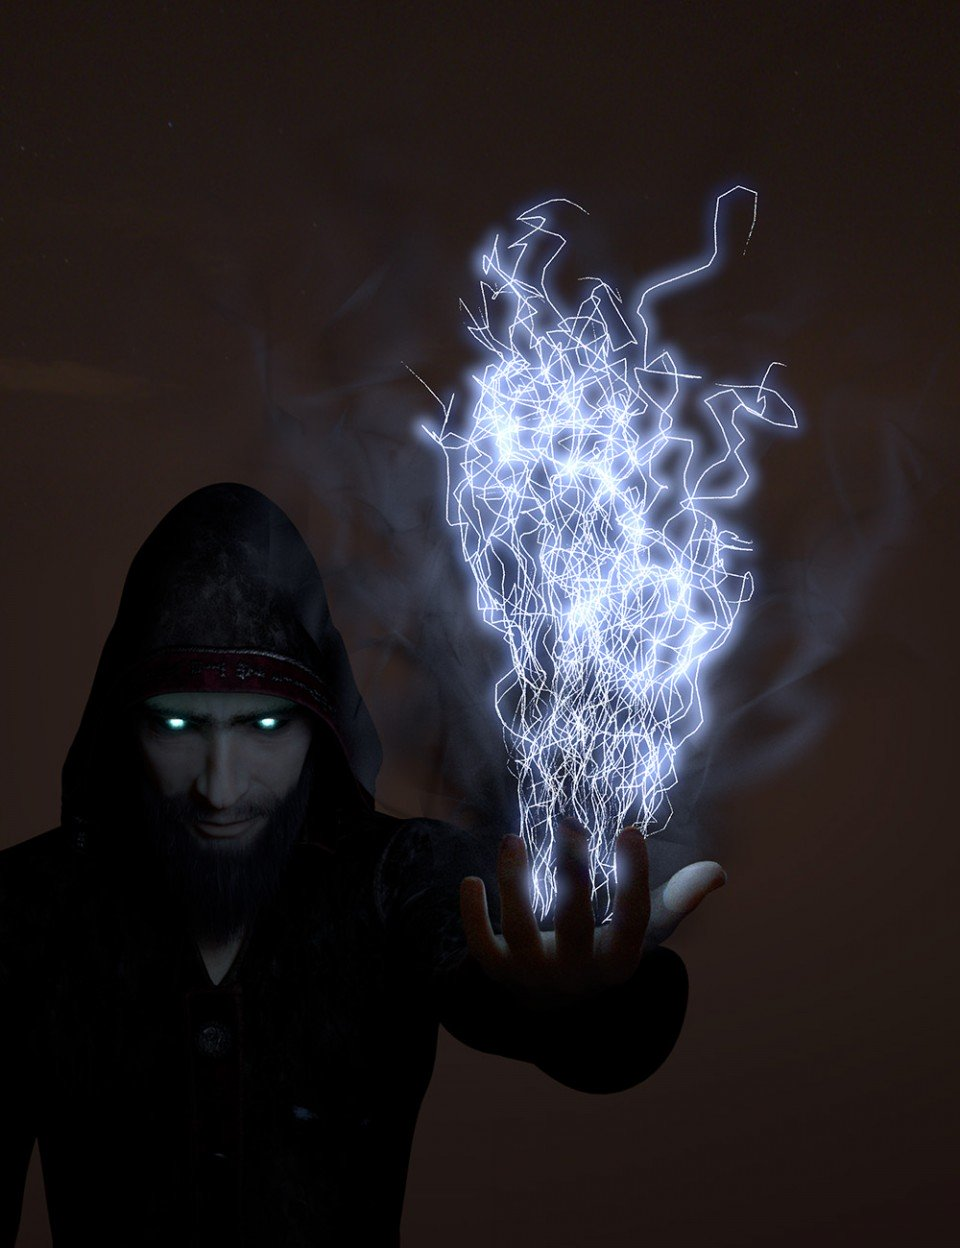 Oso Spectral Spells and Eldritch Emanations_DAZ3D下载站